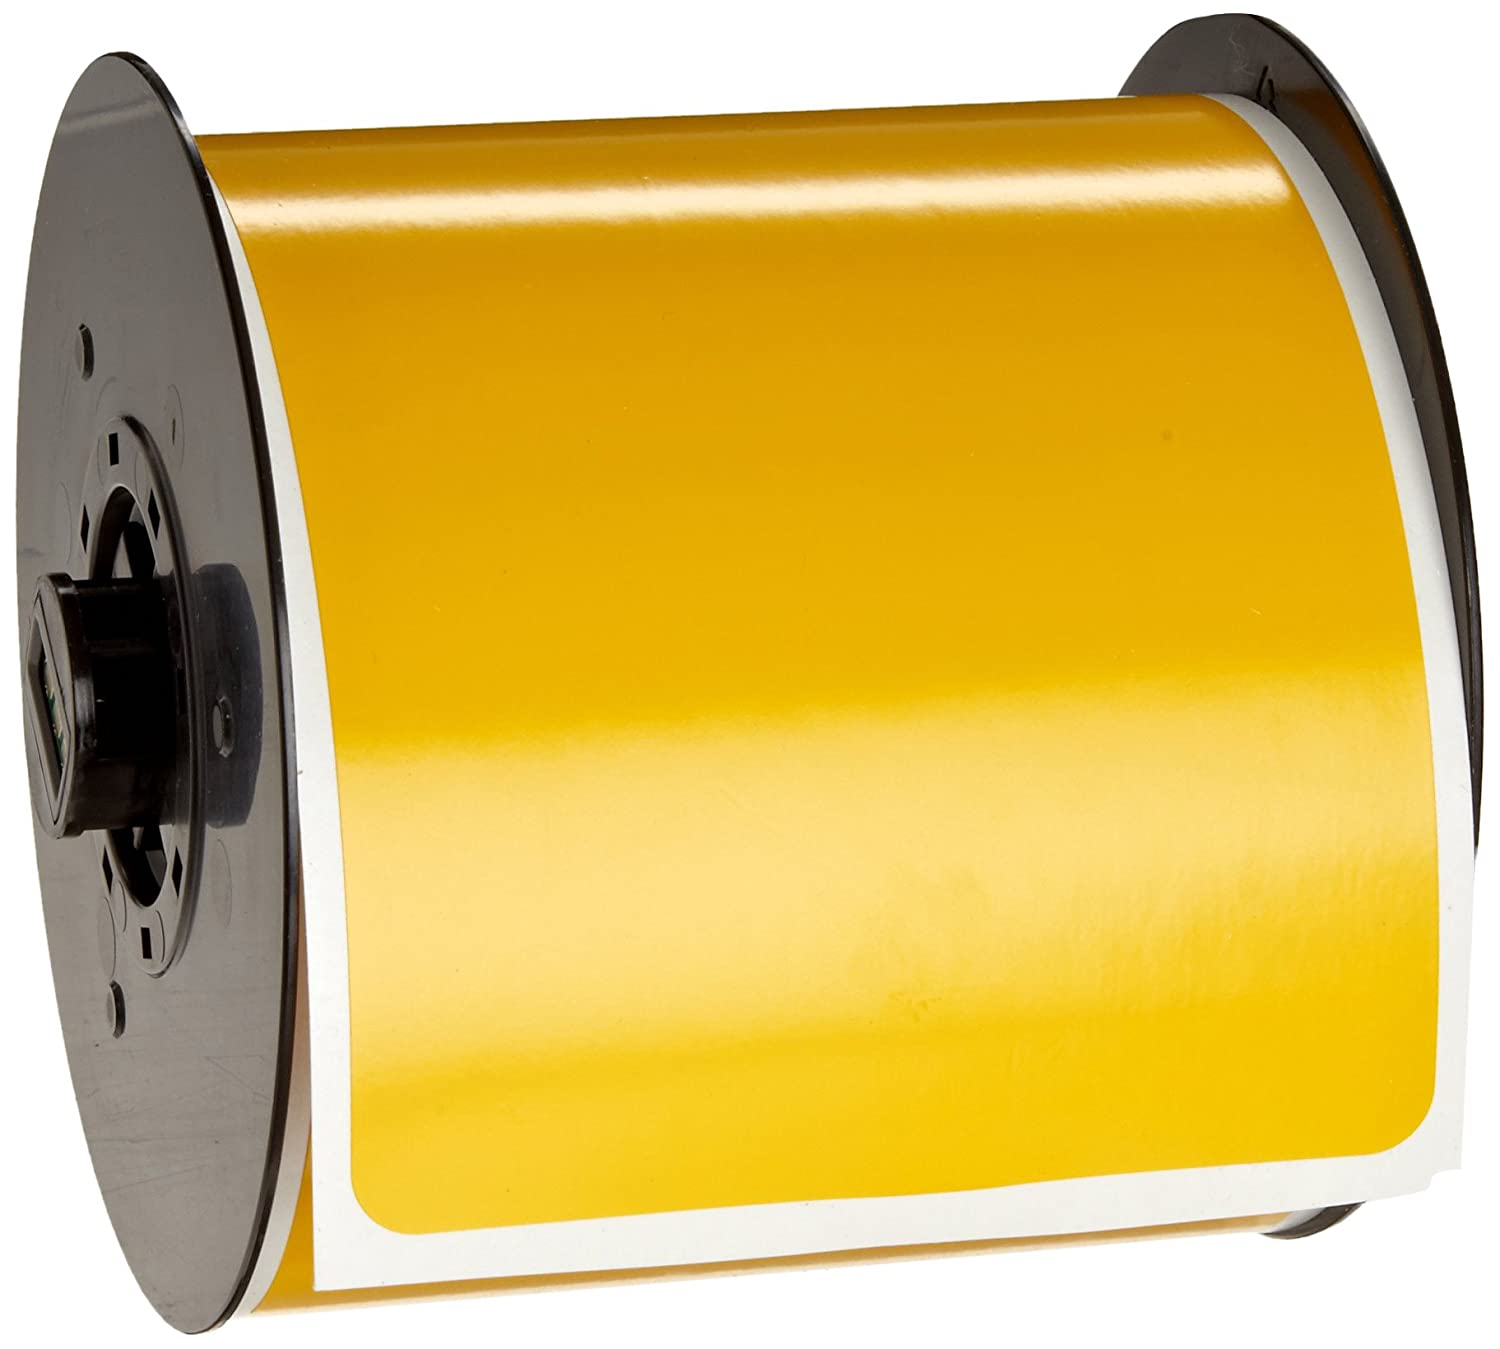 B-595 Indoor//Outdoor Vinyl White BBP31 Pre-Printed Pre-Cut Labels Tape with Sign Headers 175 per Roll Brady B30-25-595-BLNKWT 4 Height x 6 Width